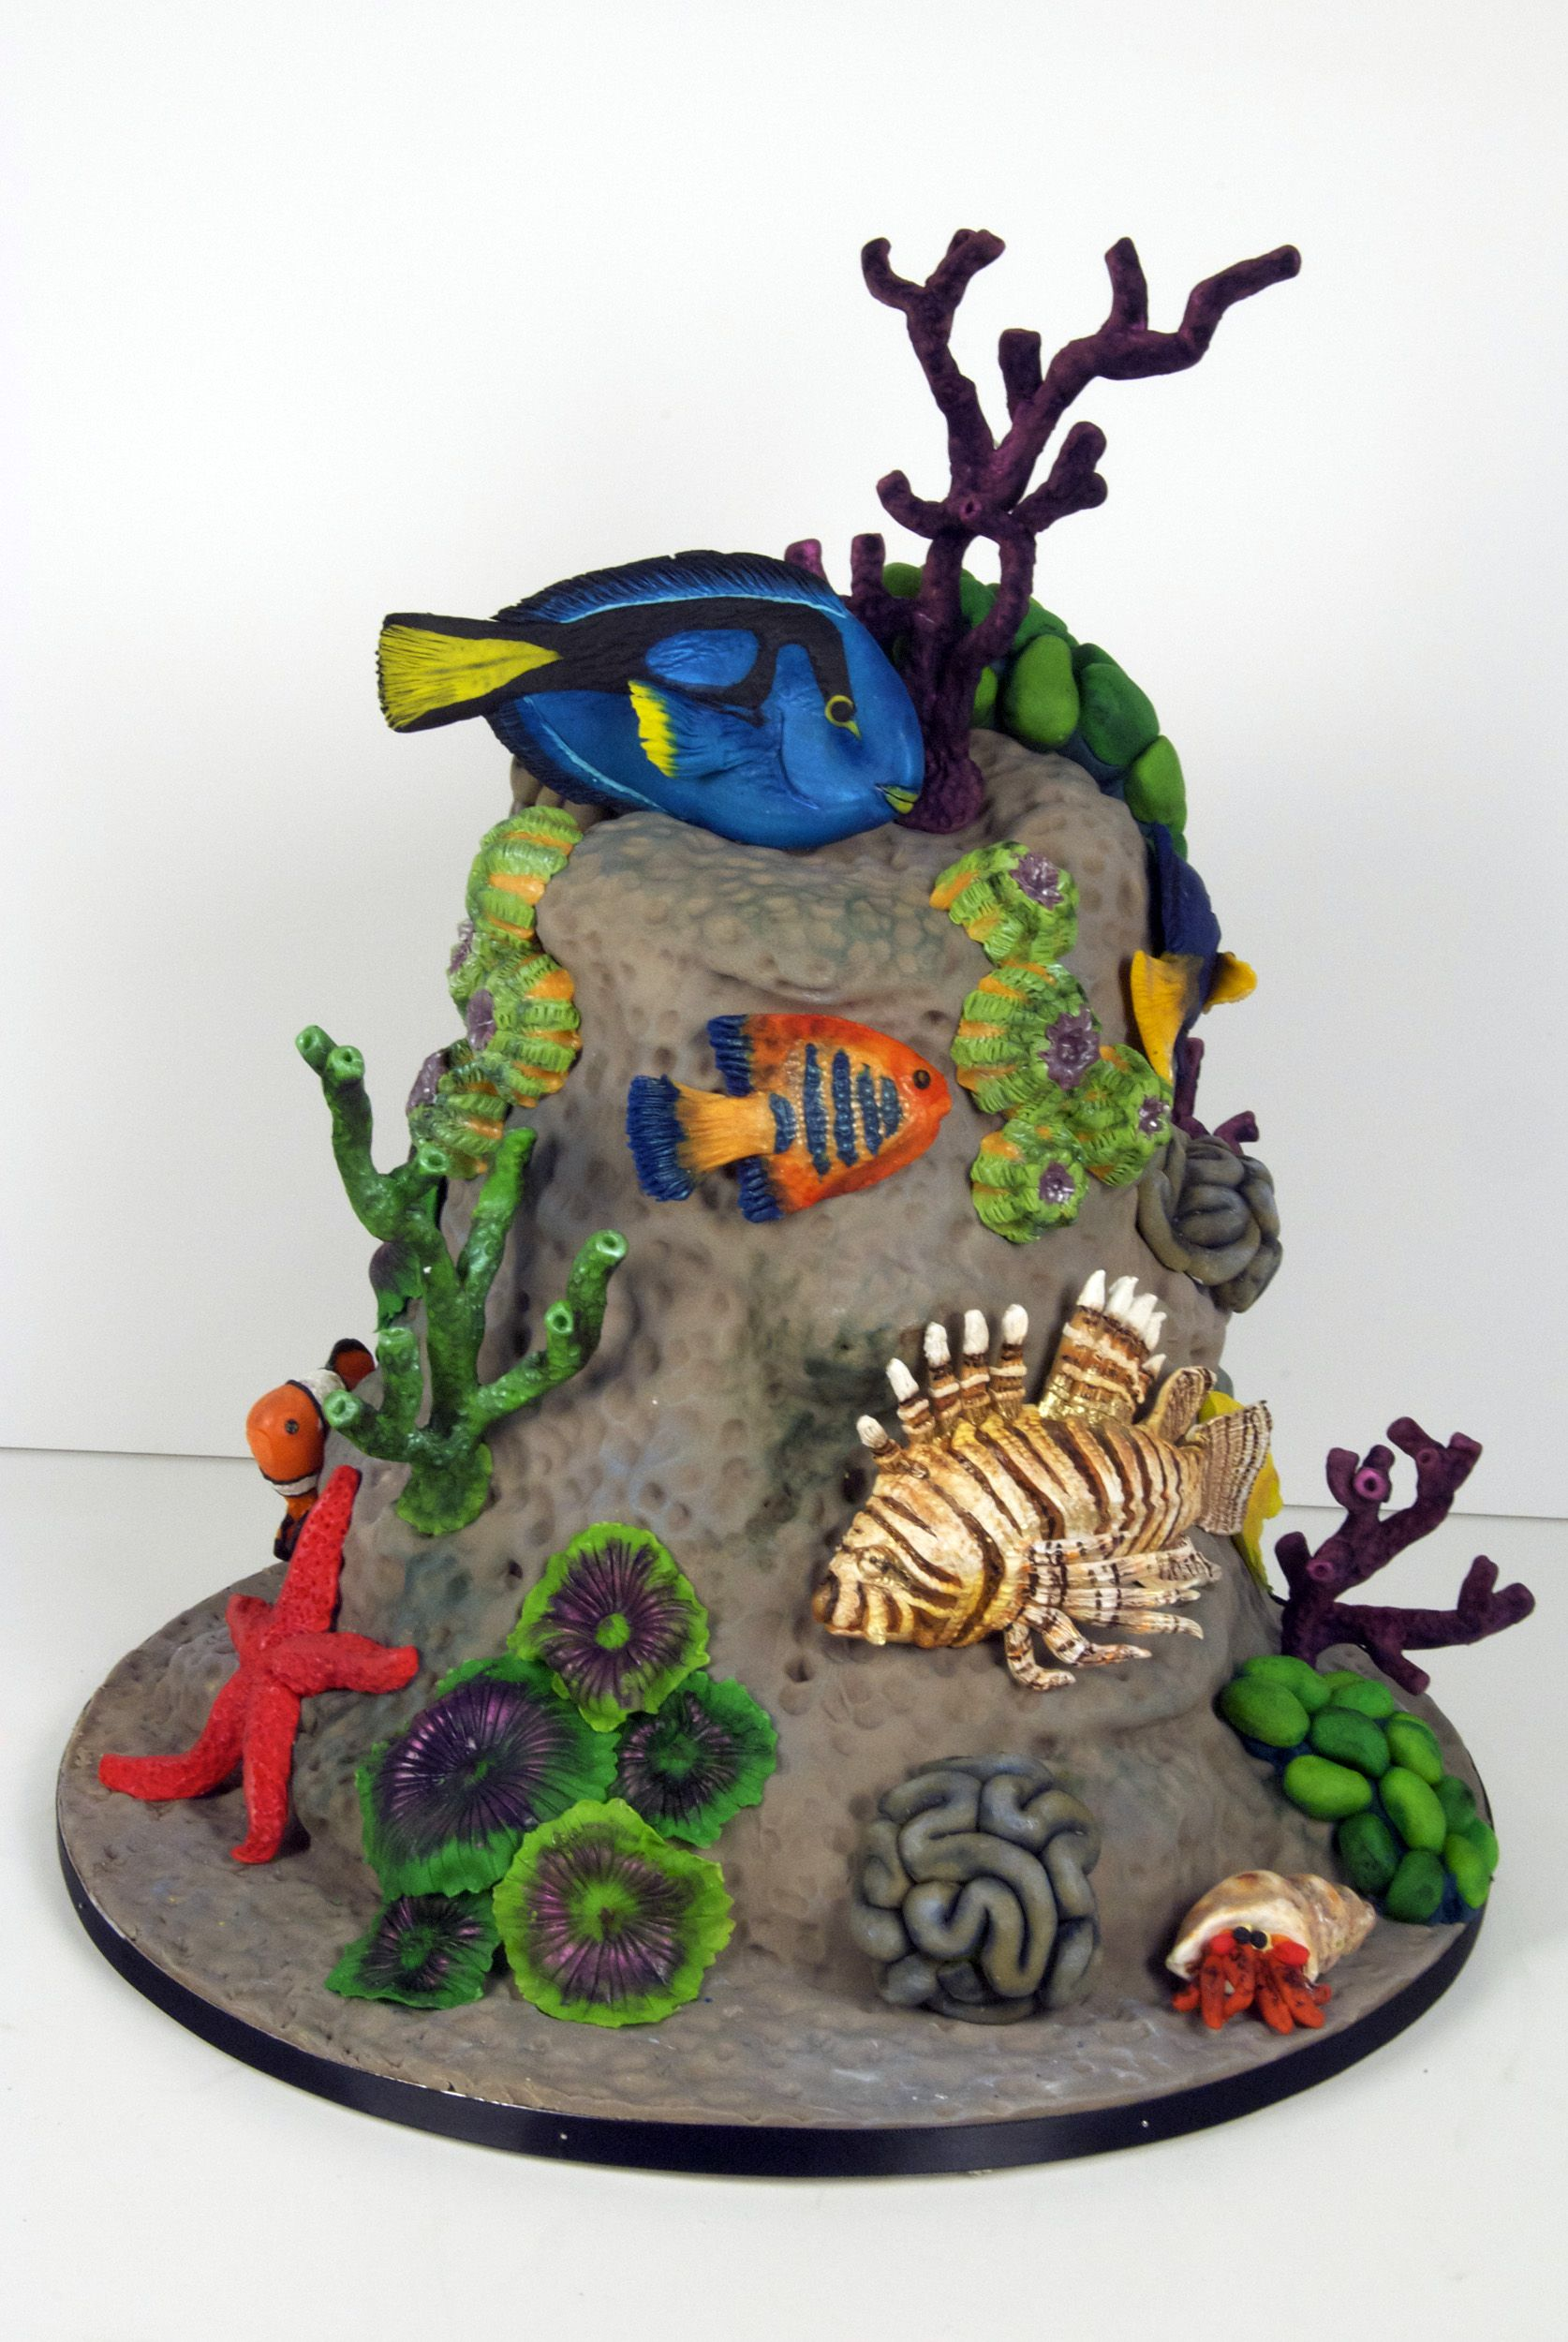 Edible Chocolate Parrot Fish Cake Decorations